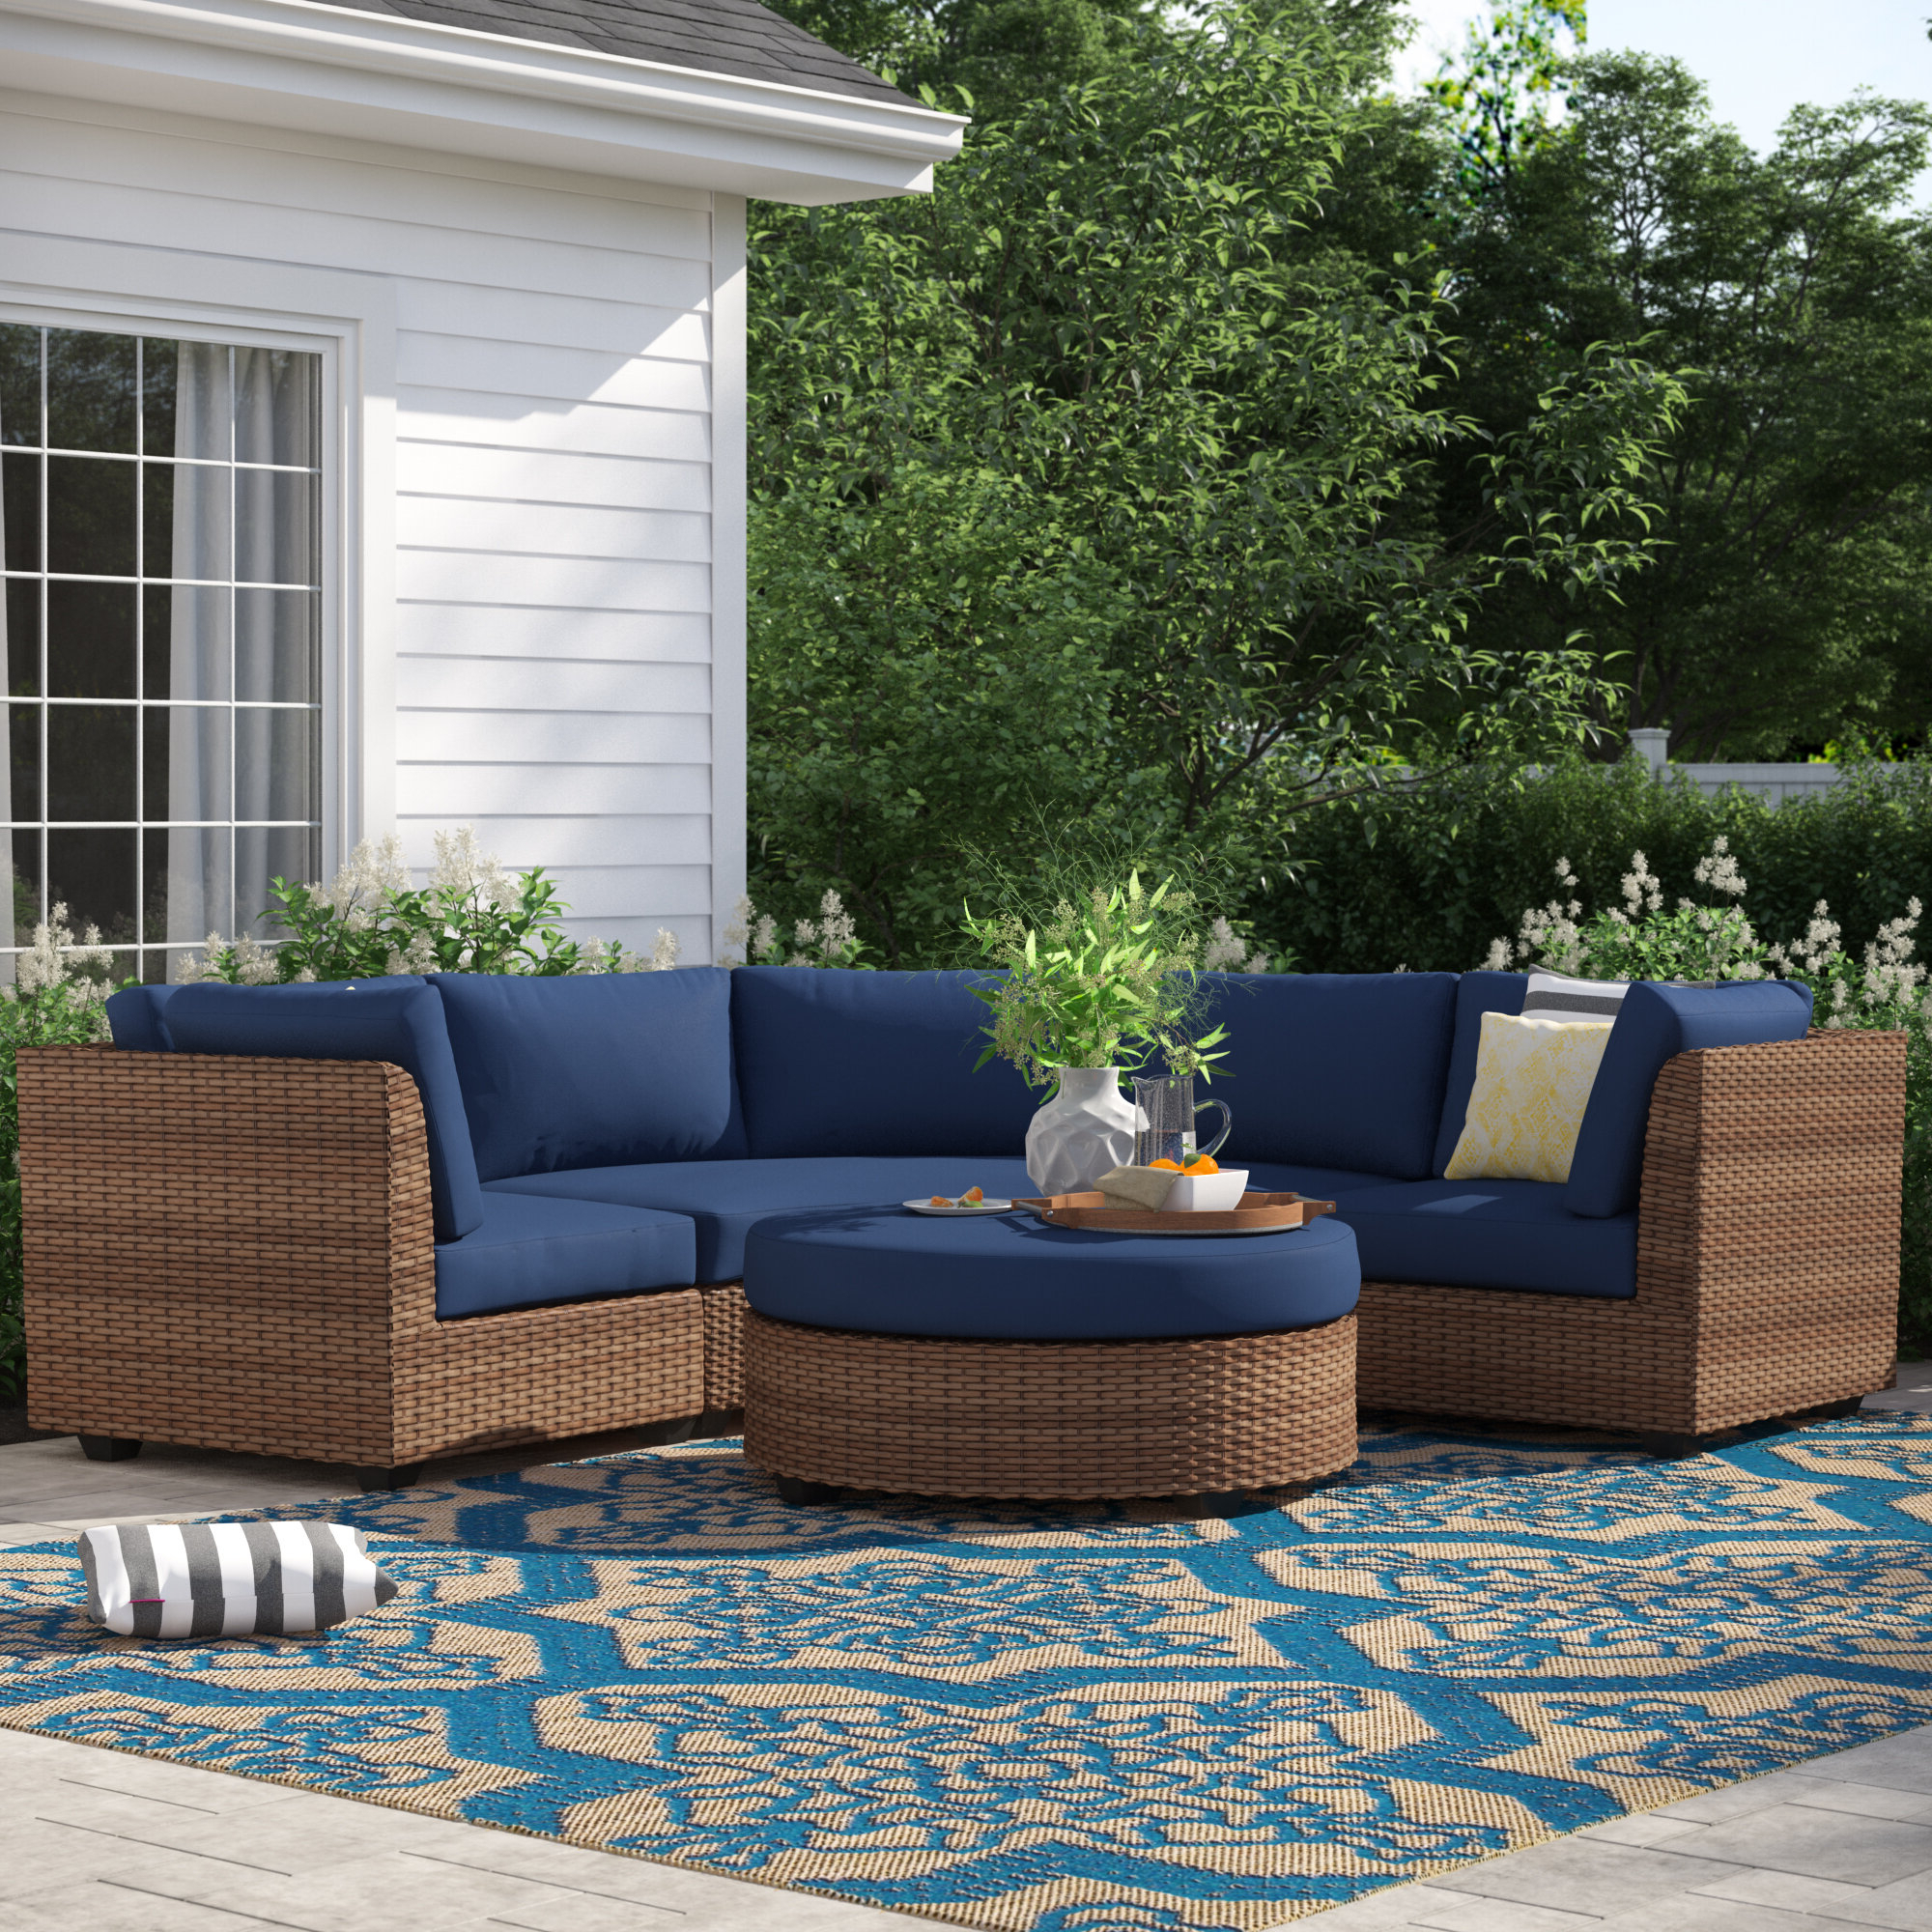 Widely Used Waterbury 4 Piece Rattan Sectional Seating Group With Cushions Within Waterbury Curved Armless Sofa With Cushions (View 19 of 20)